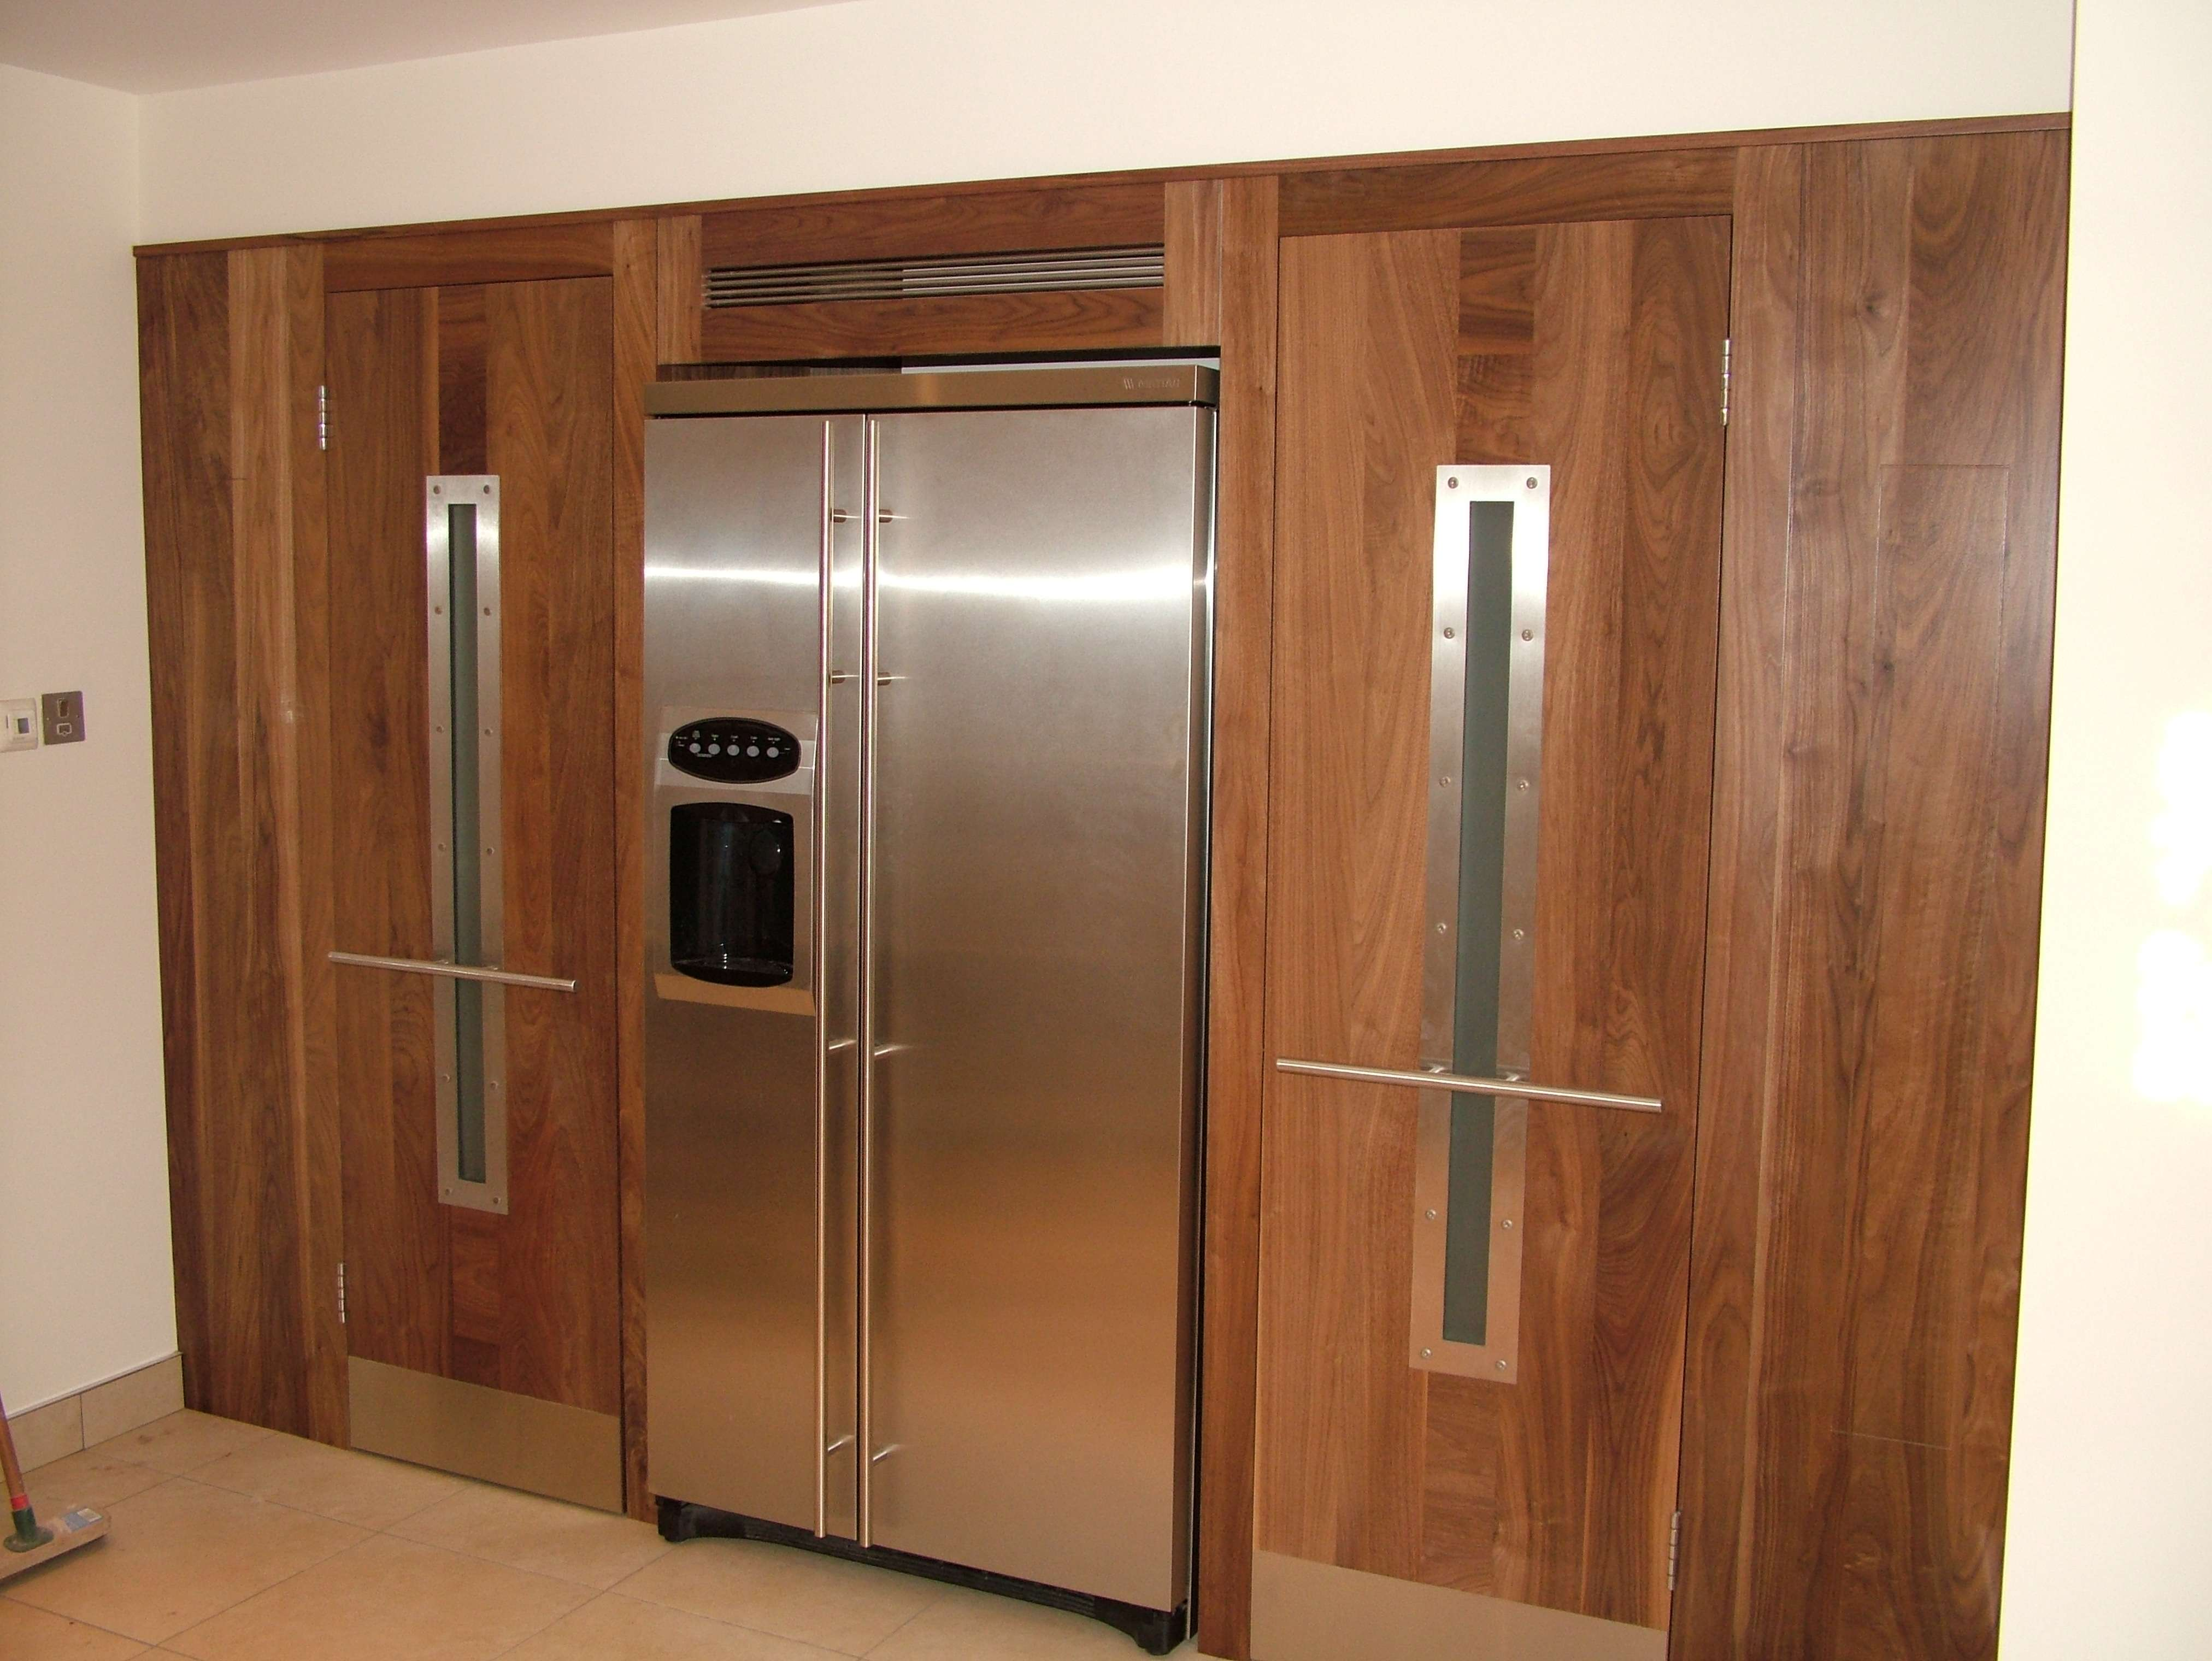 American Fridge Freezer Unit Surrounded Custom Built Walk